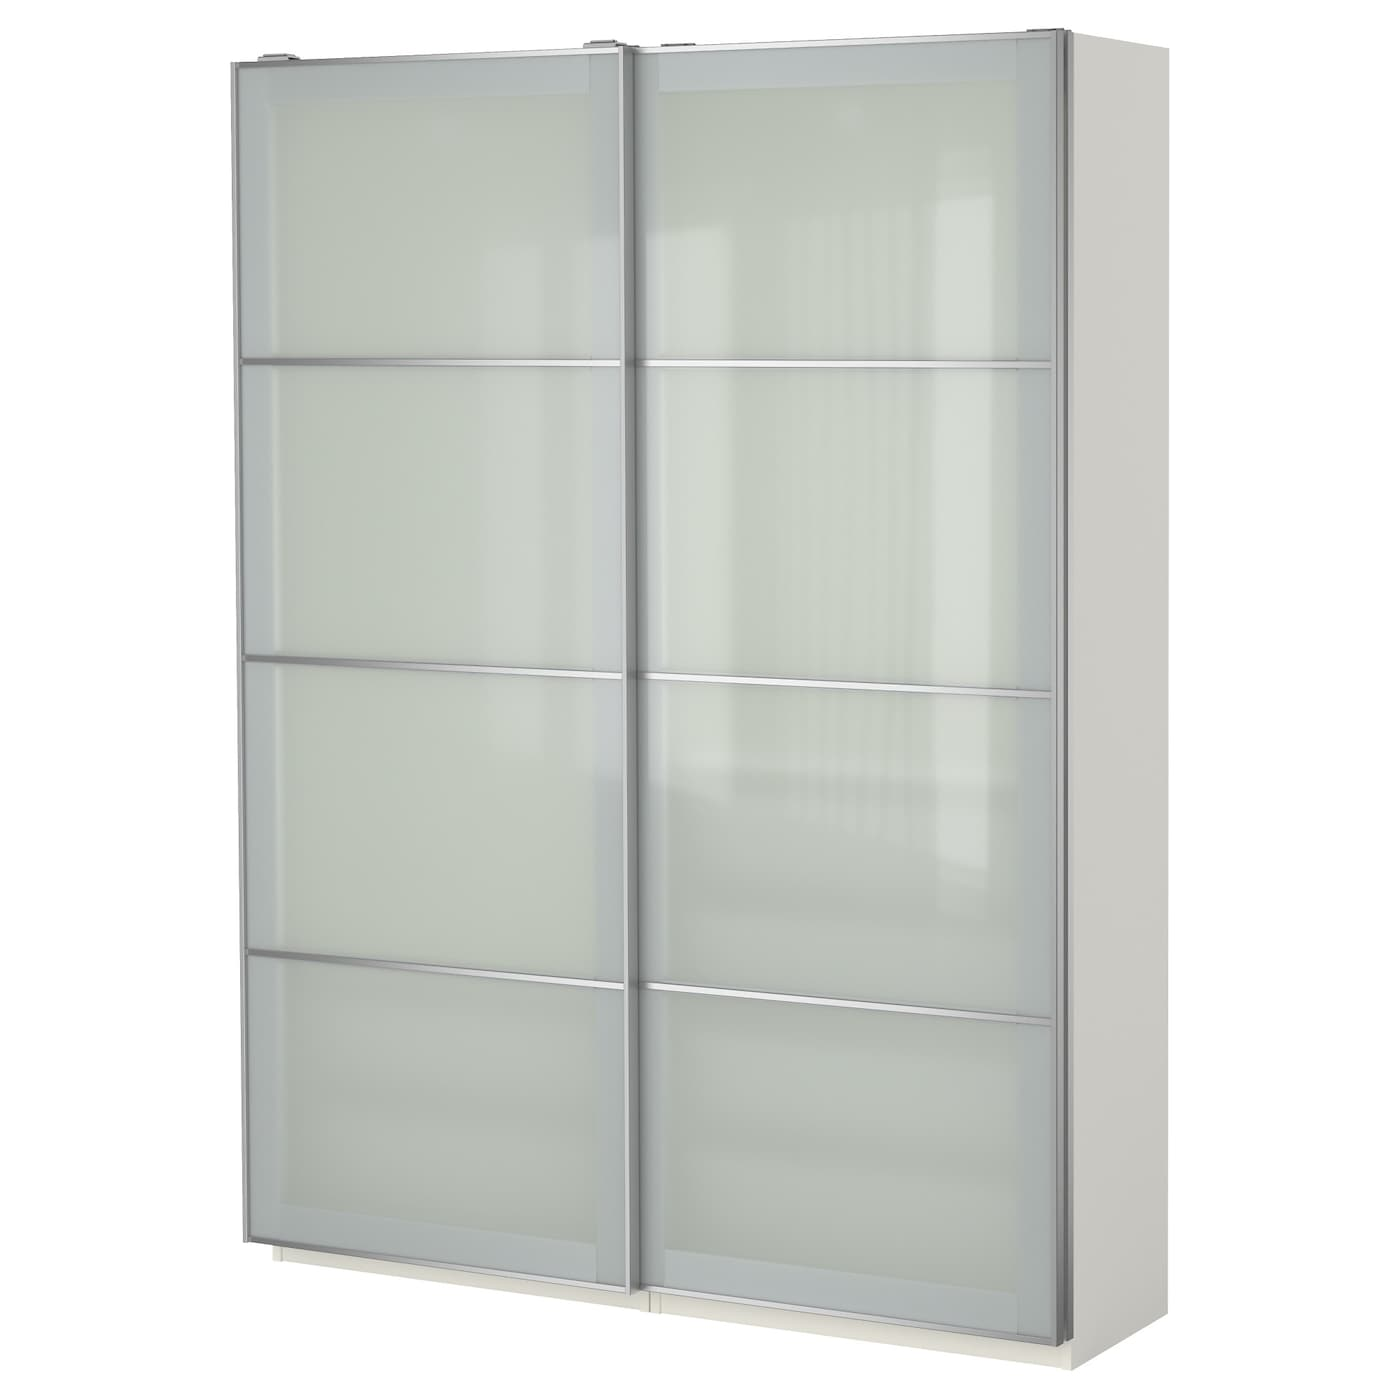 pax wardrobe white sekken frosted glass 150 x 44 x 201 cm ikea. Black Bedroom Furniture Sets. Home Design Ideas